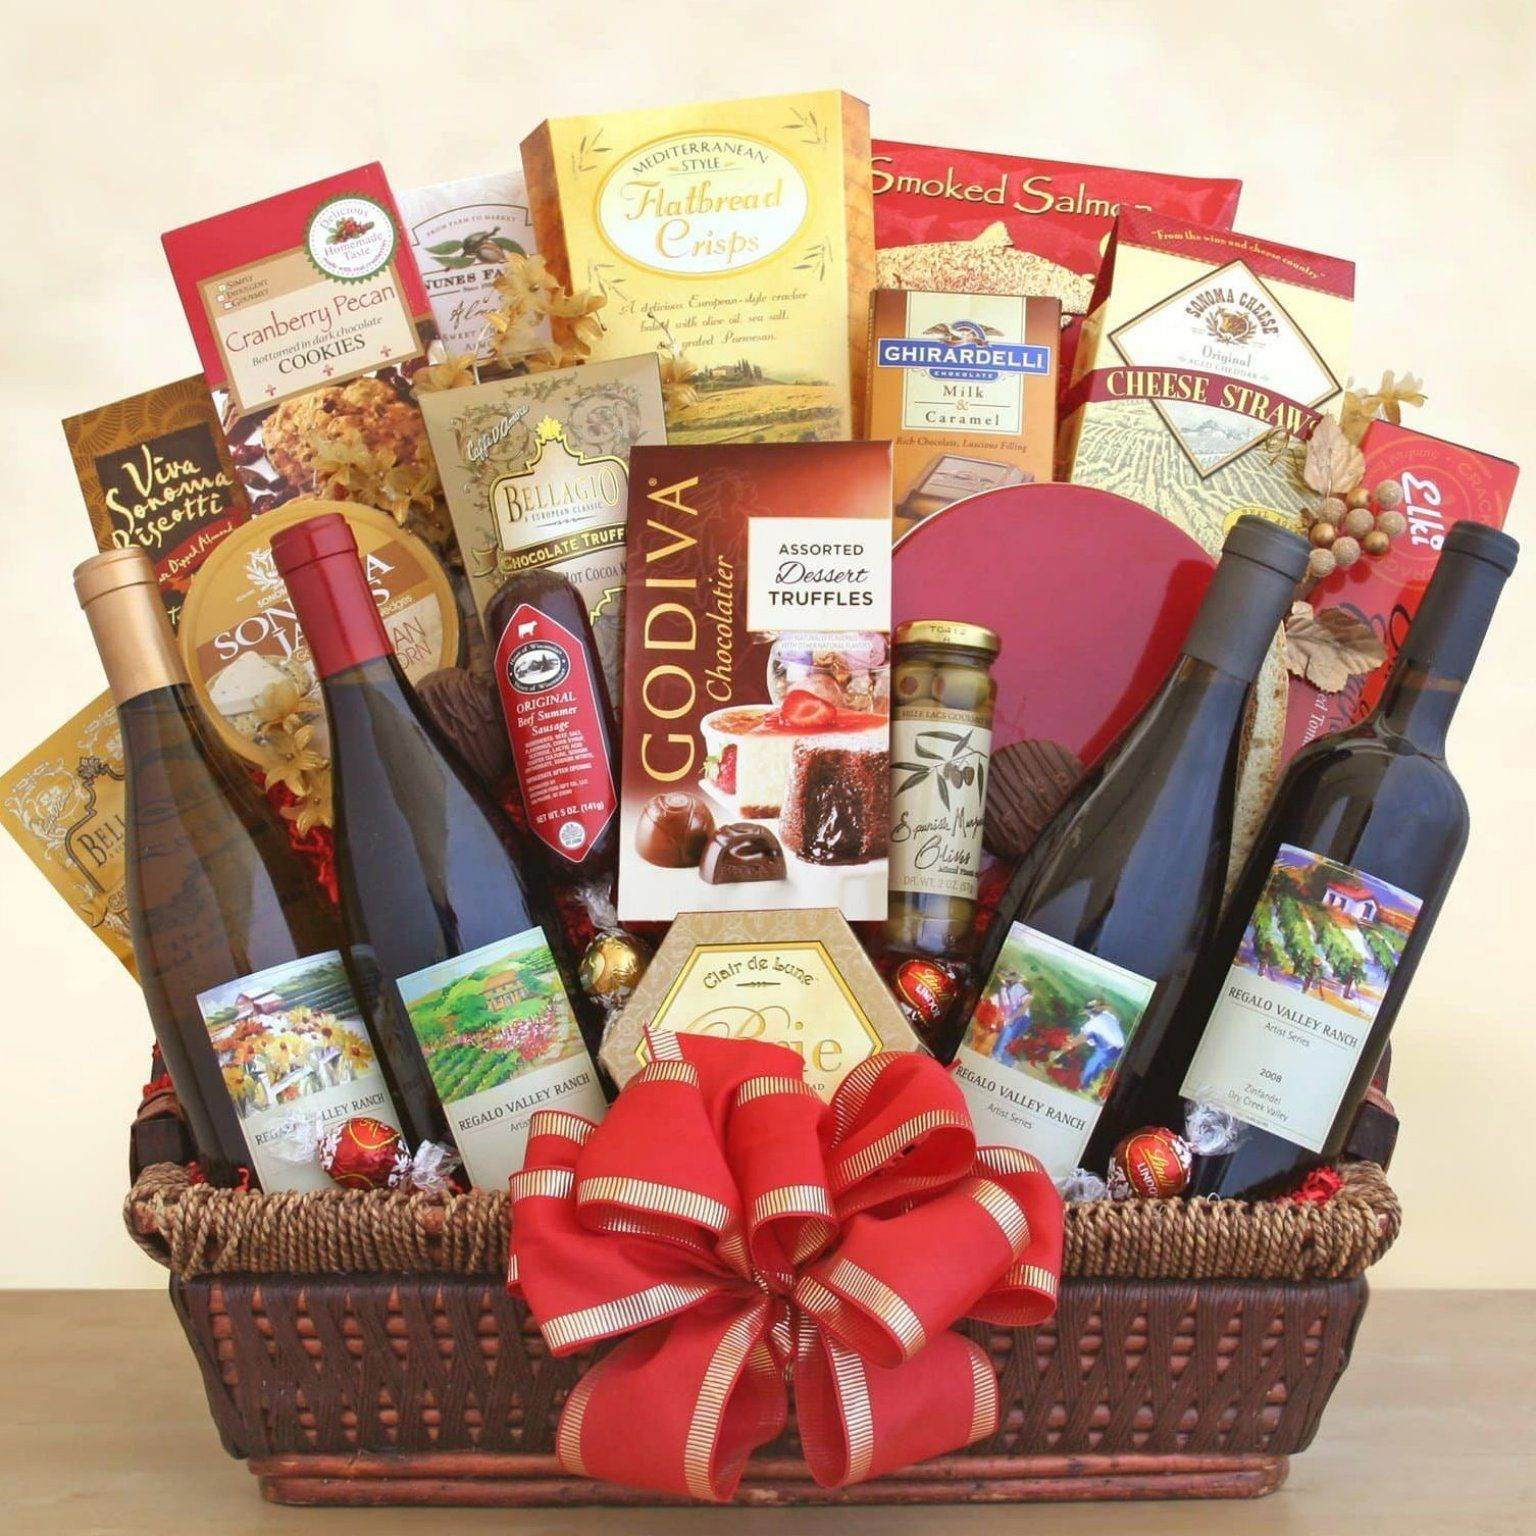 California Ultimate Gourmet Wine Gift Basket Gift Diy Gift Recommendations For Friends Special Day In 2020 Gourmet Gift Baskets Wine Gift Baskets Wine Gifts